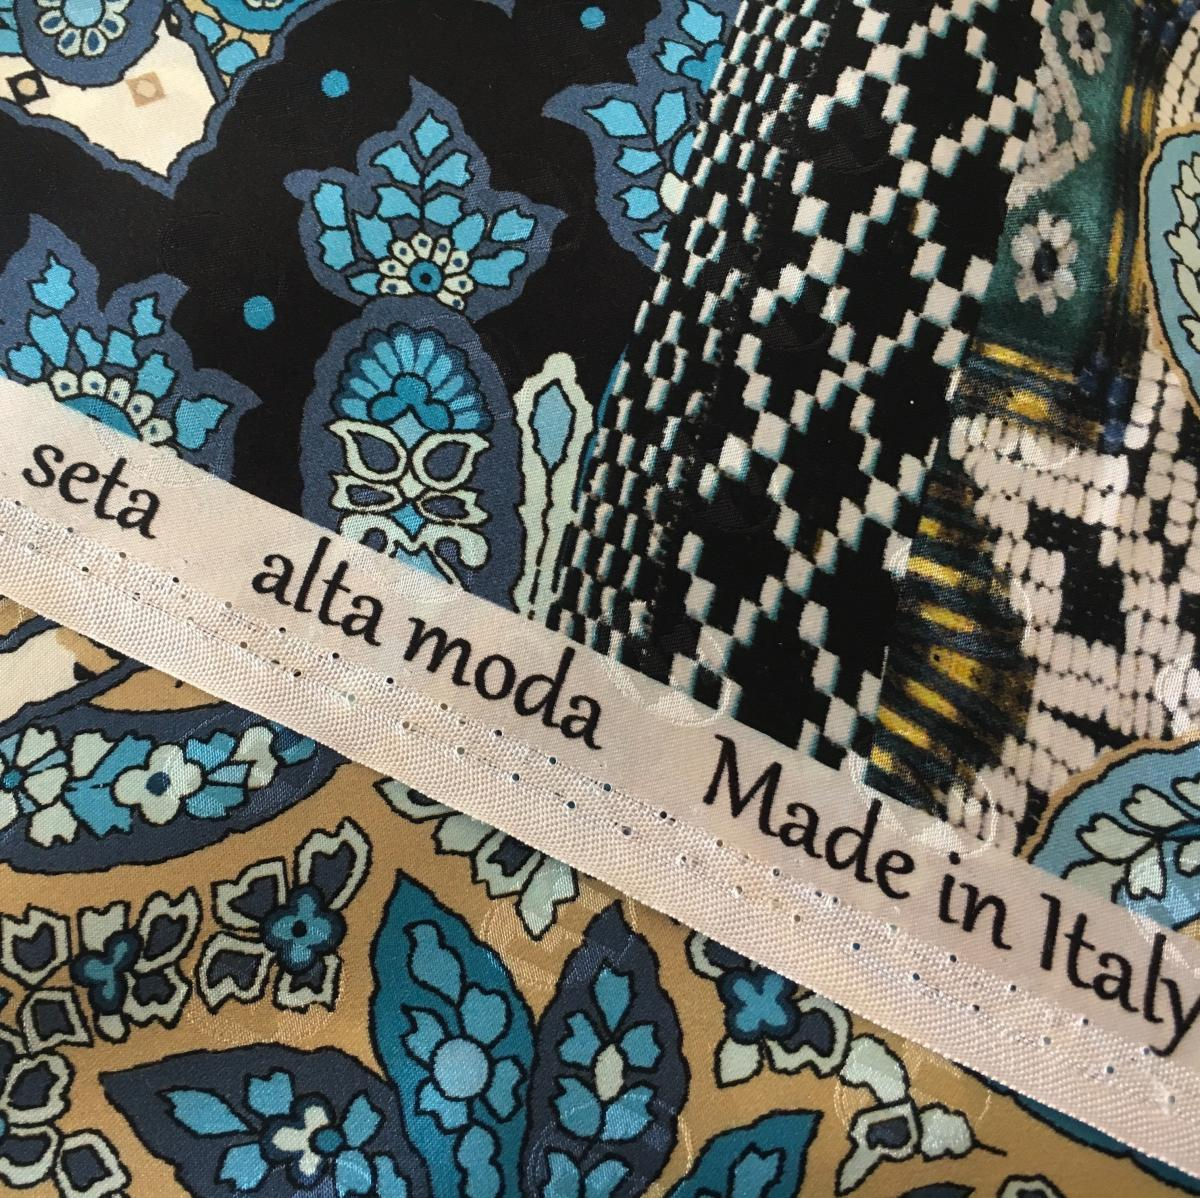 Seta Alta Moda, Italian high end silk, Stefanie Savary, online shop for hand made sustainable luxury dresses